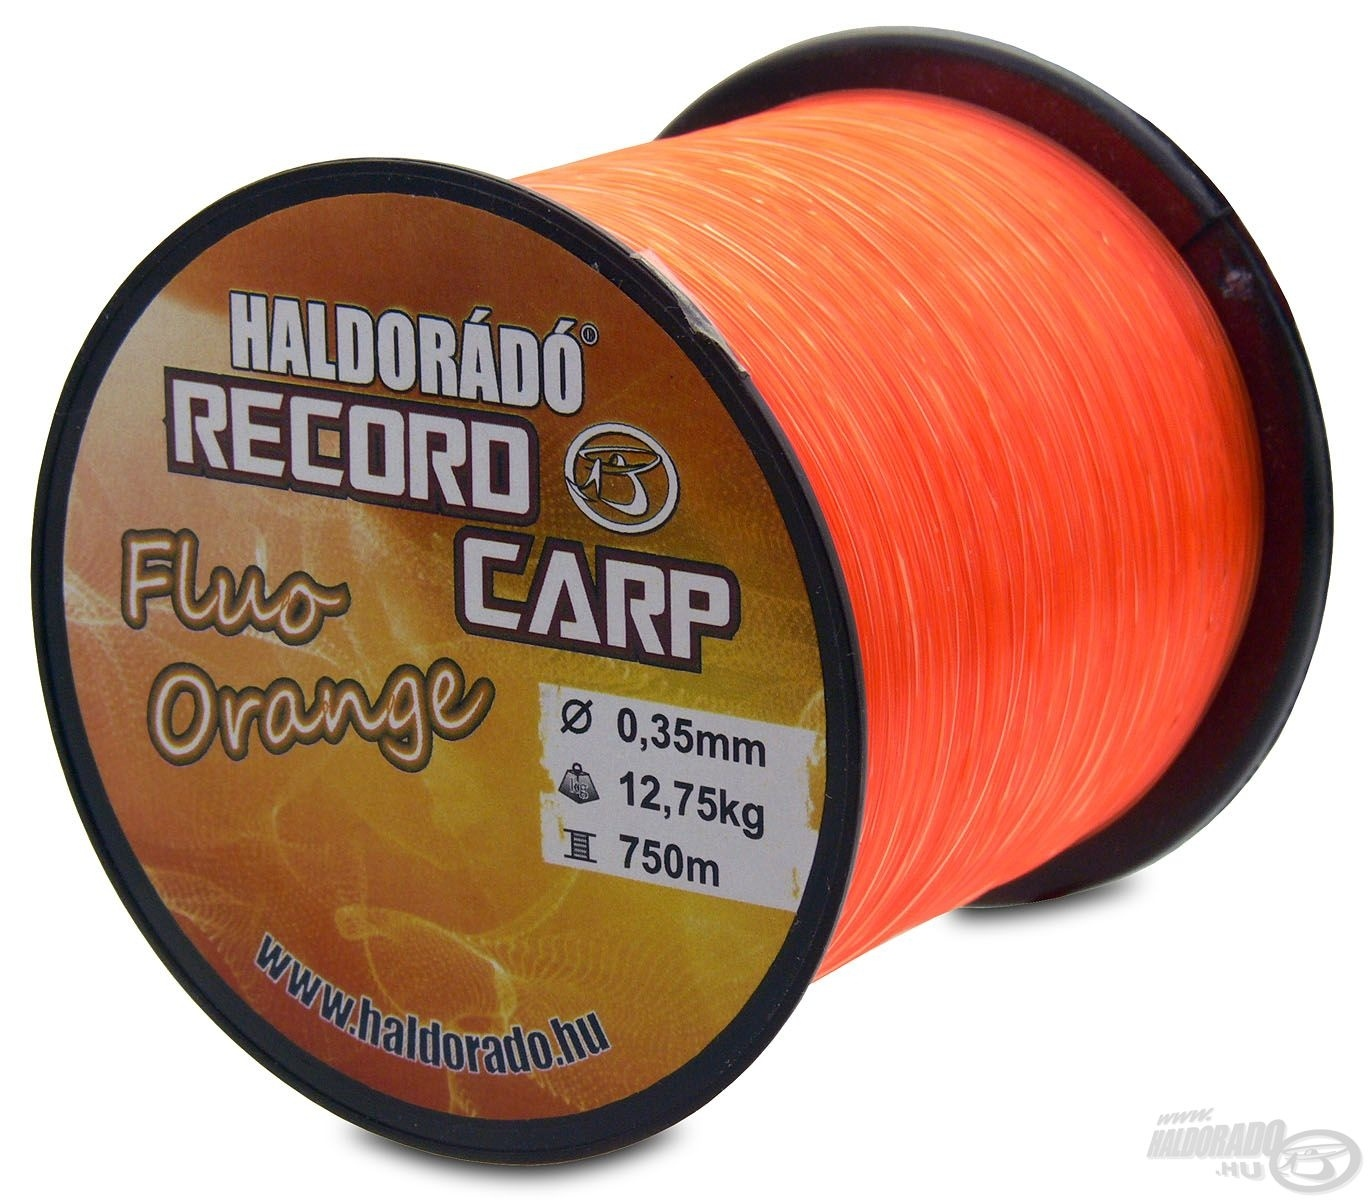 HALDOR�D�, Record, Carp, Fluo, Orange, 1990Ft